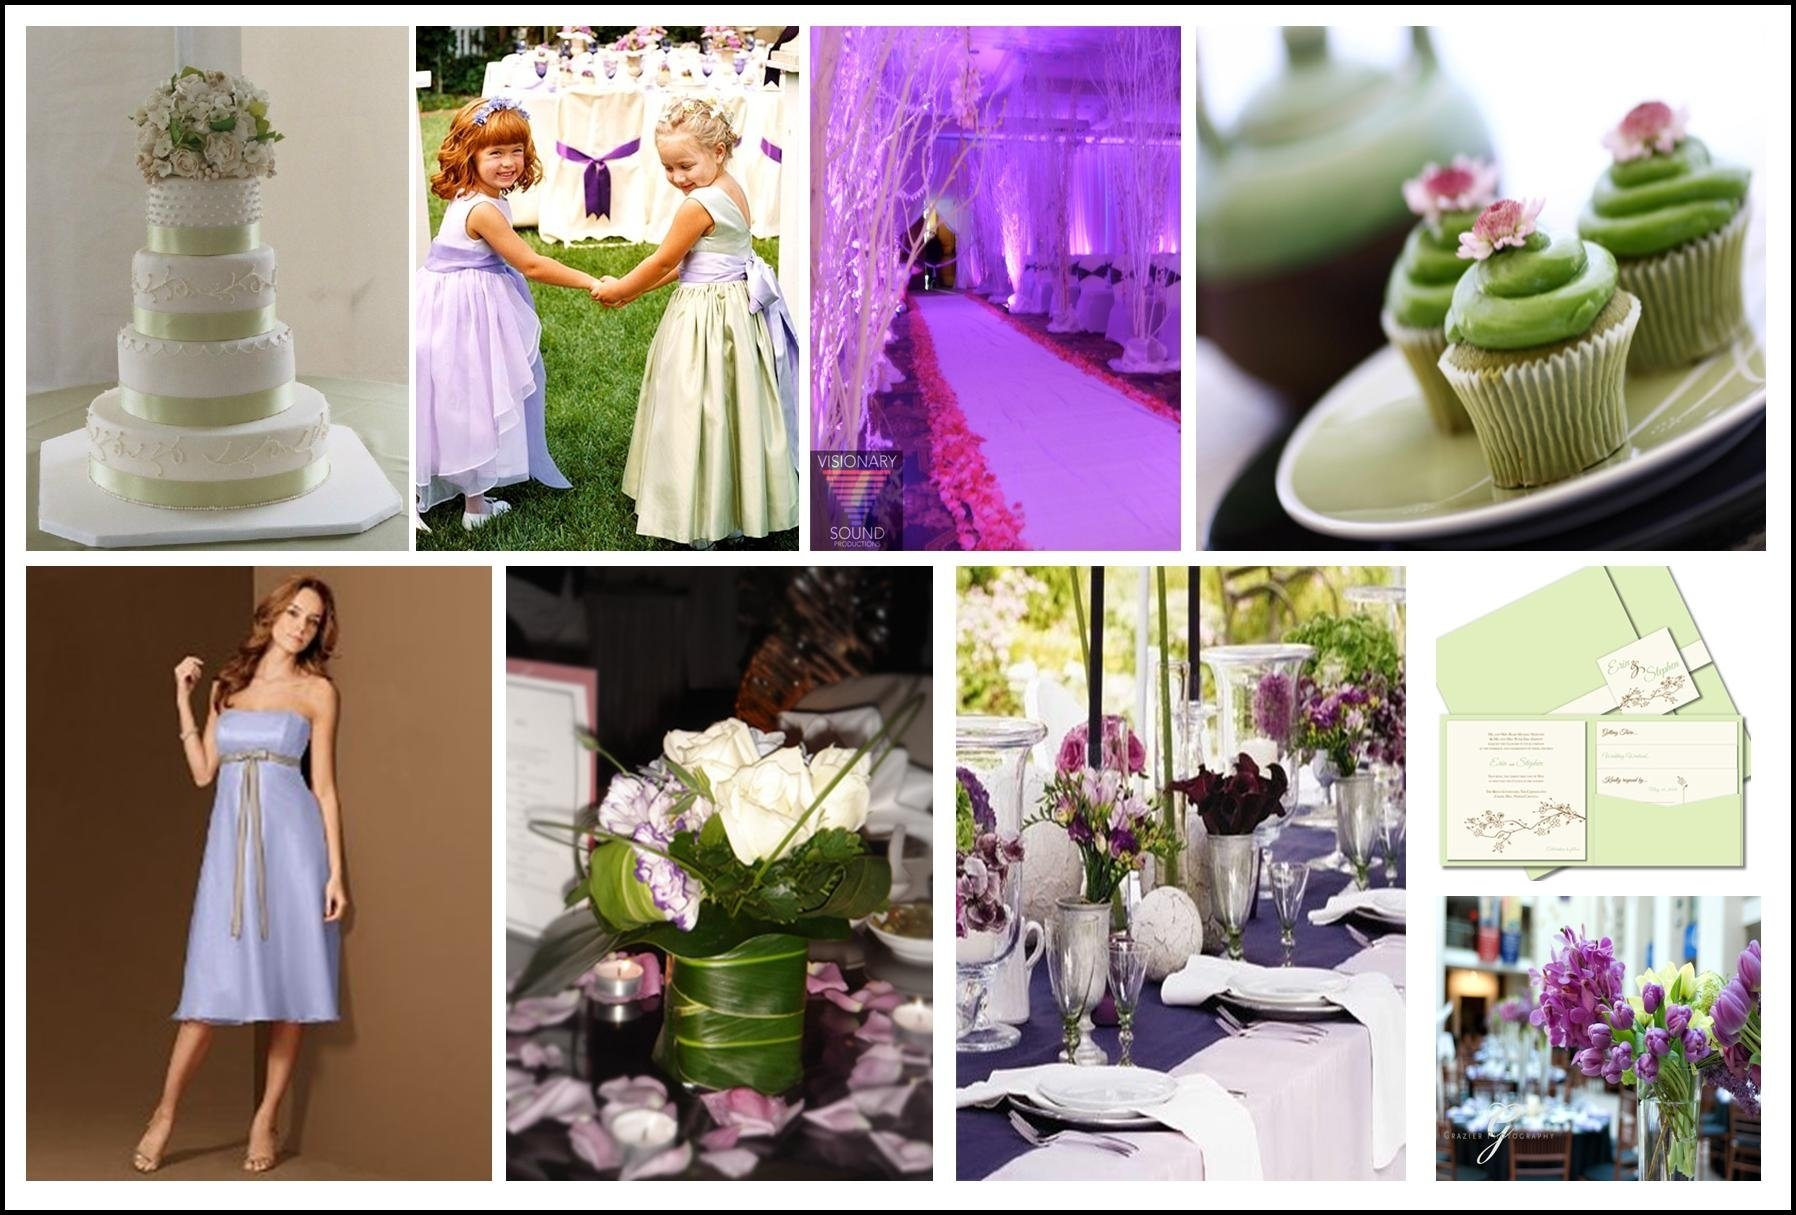 10 Awesome Purple And Green Wedding Ideas purple and green wedding colors wedding ideas uxjj 2021